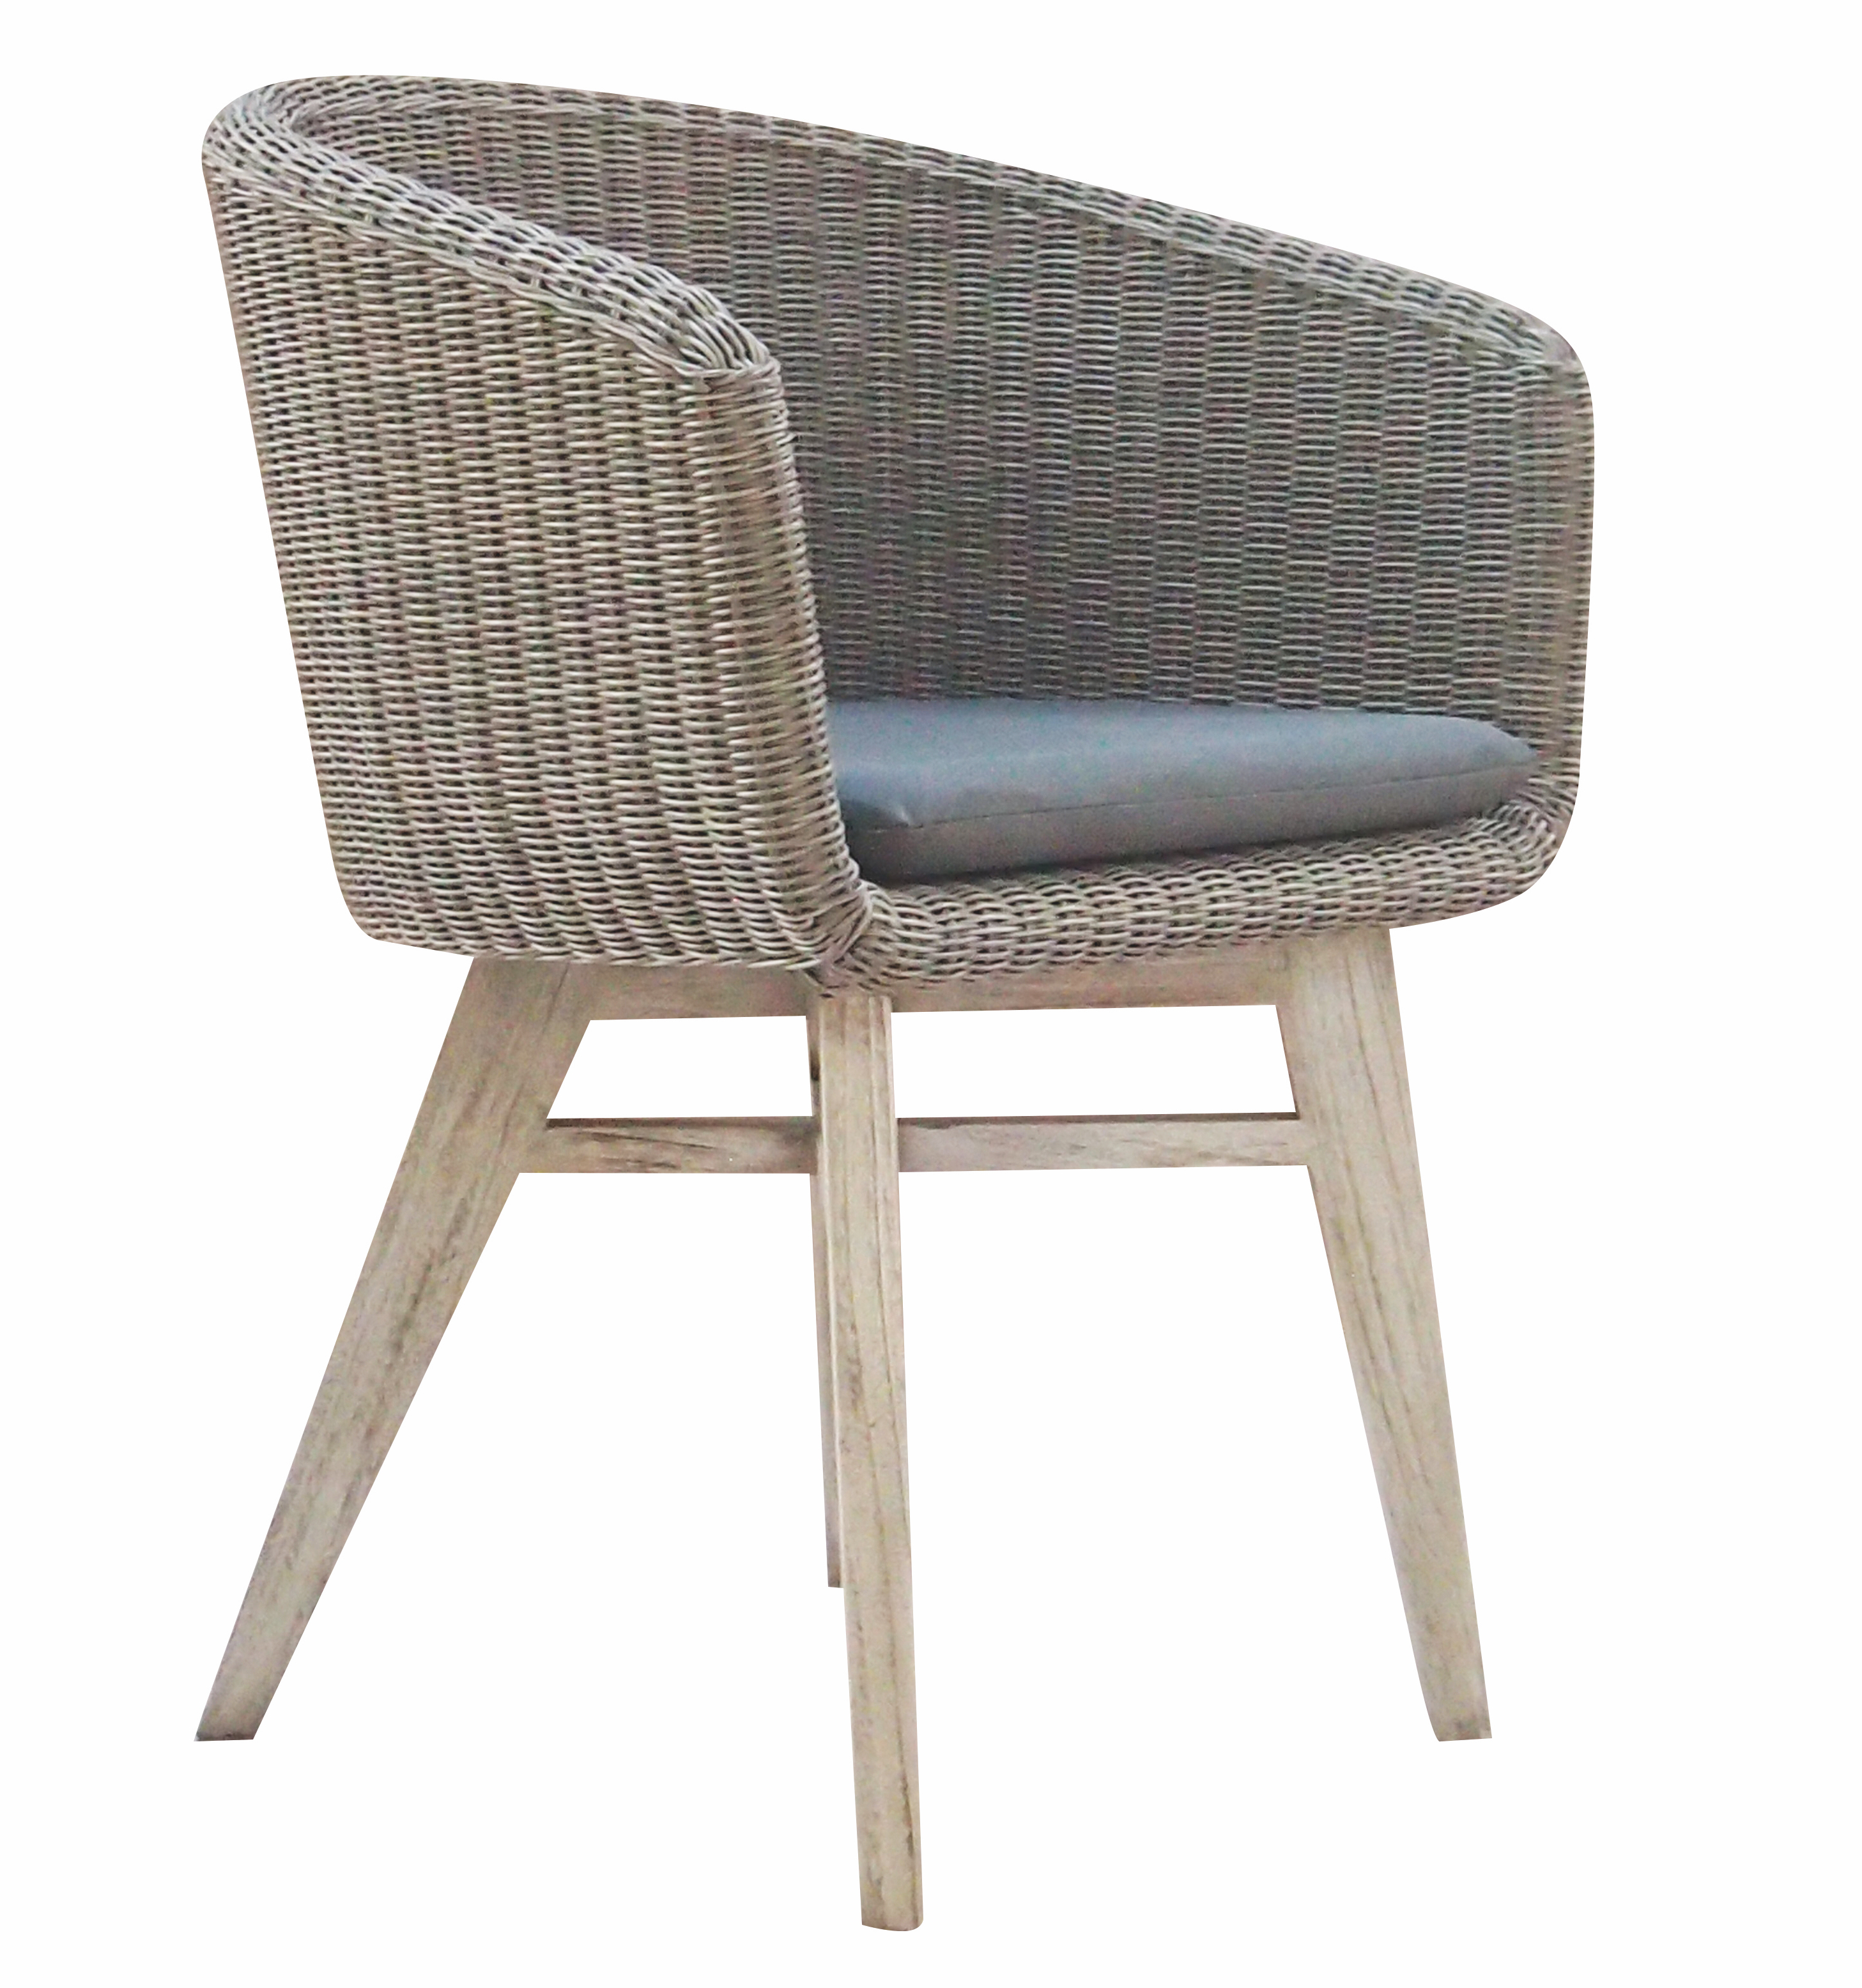 Modern Wicker Teak Dining Chairs Contract Hotels